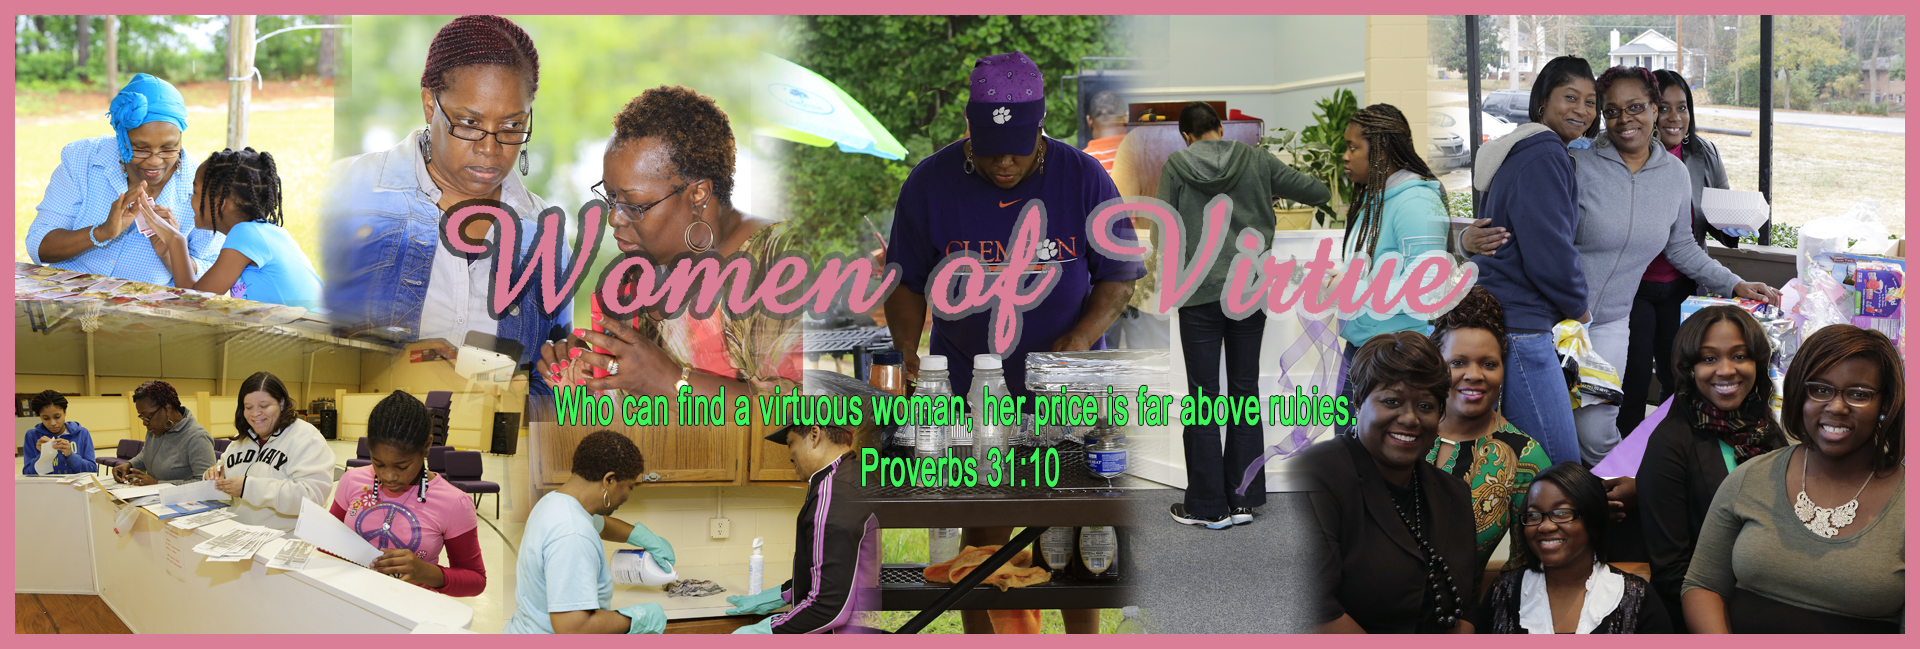 01 Women of Virtue Banner